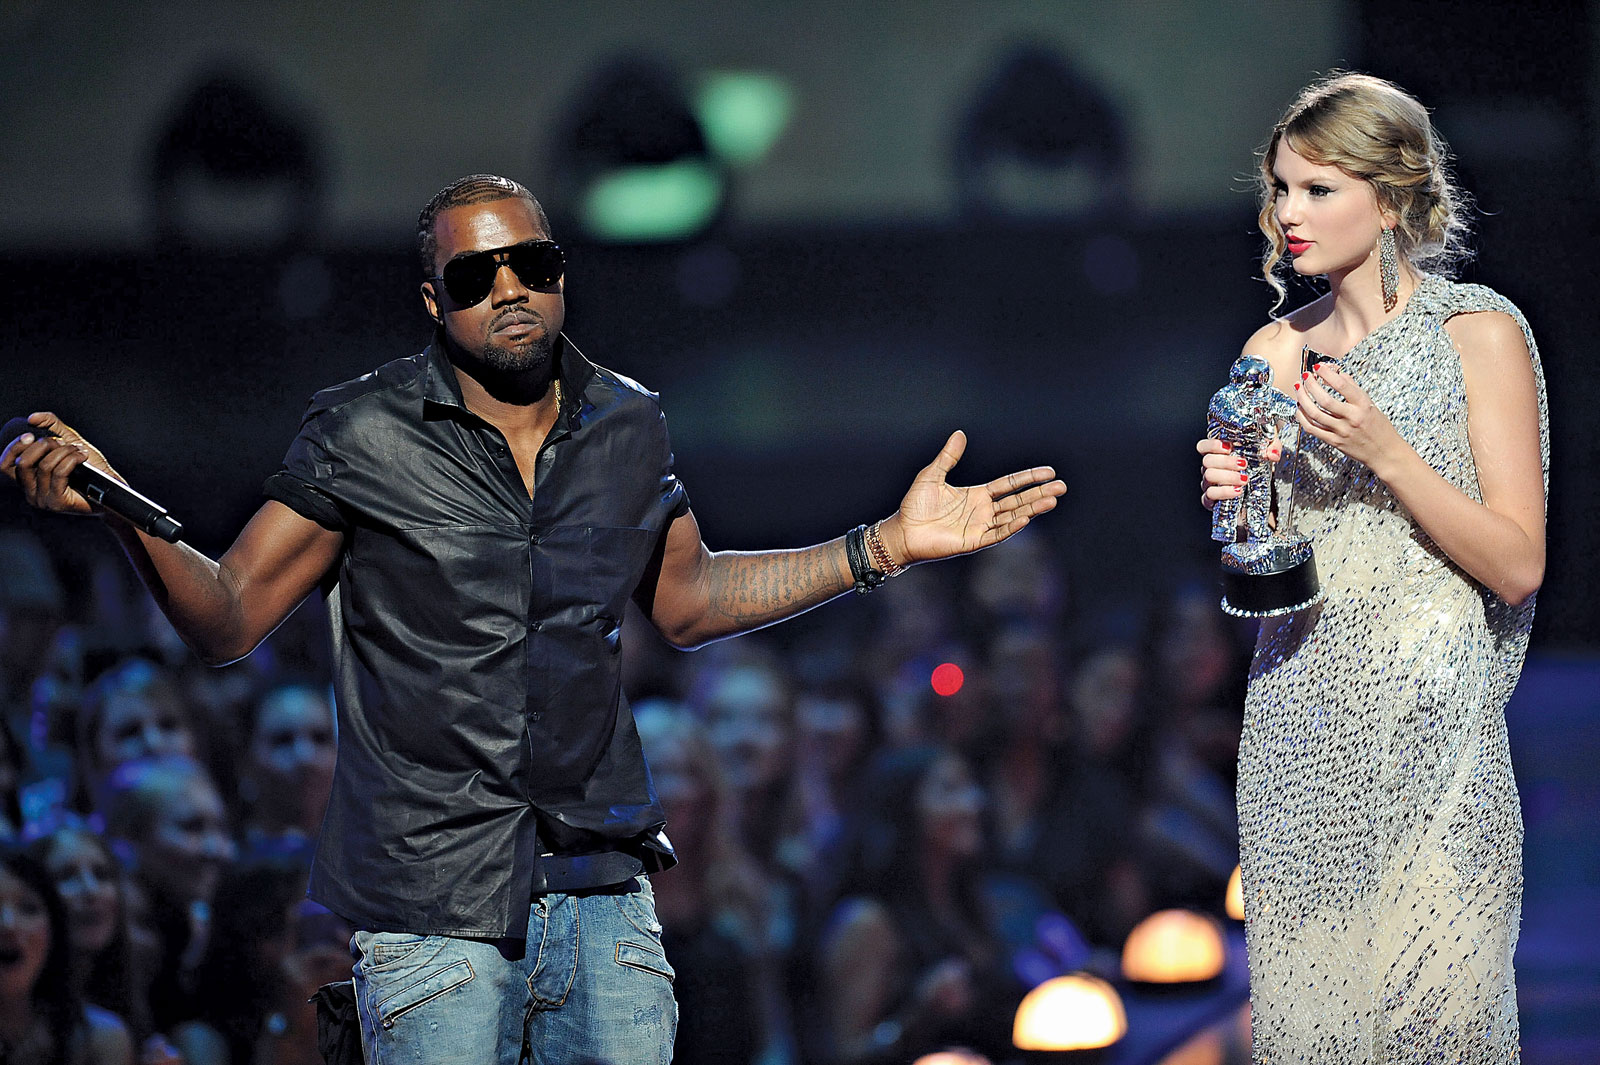 When Kanye West interrupted Taylor Swift as she accepted the award for best Music Video at the 2009 VMAs. (Photo credit: Yahoo! News)